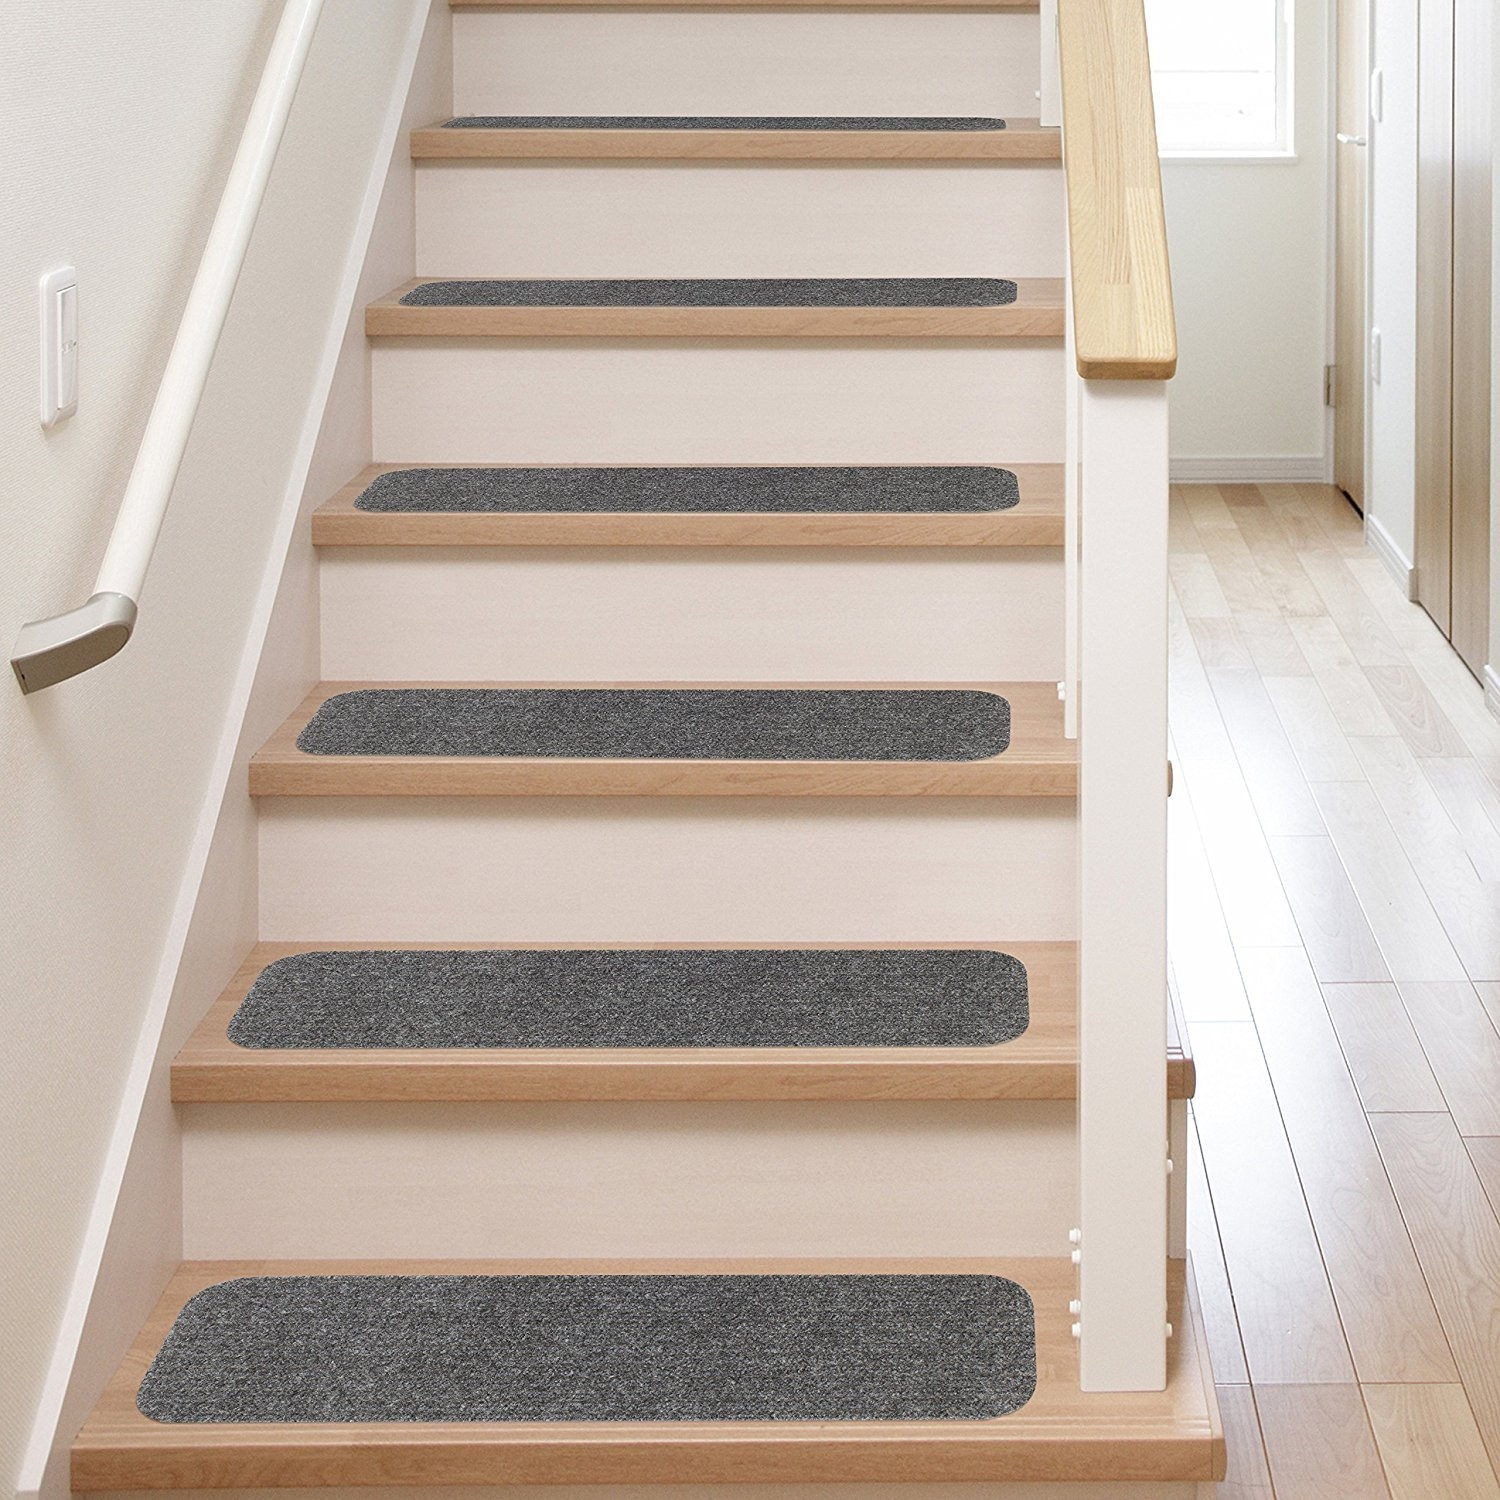 Amazon Best Sellers Best Staircase Step Treads In NonSlip Stair Tread Rugs (Image 1 of 15)